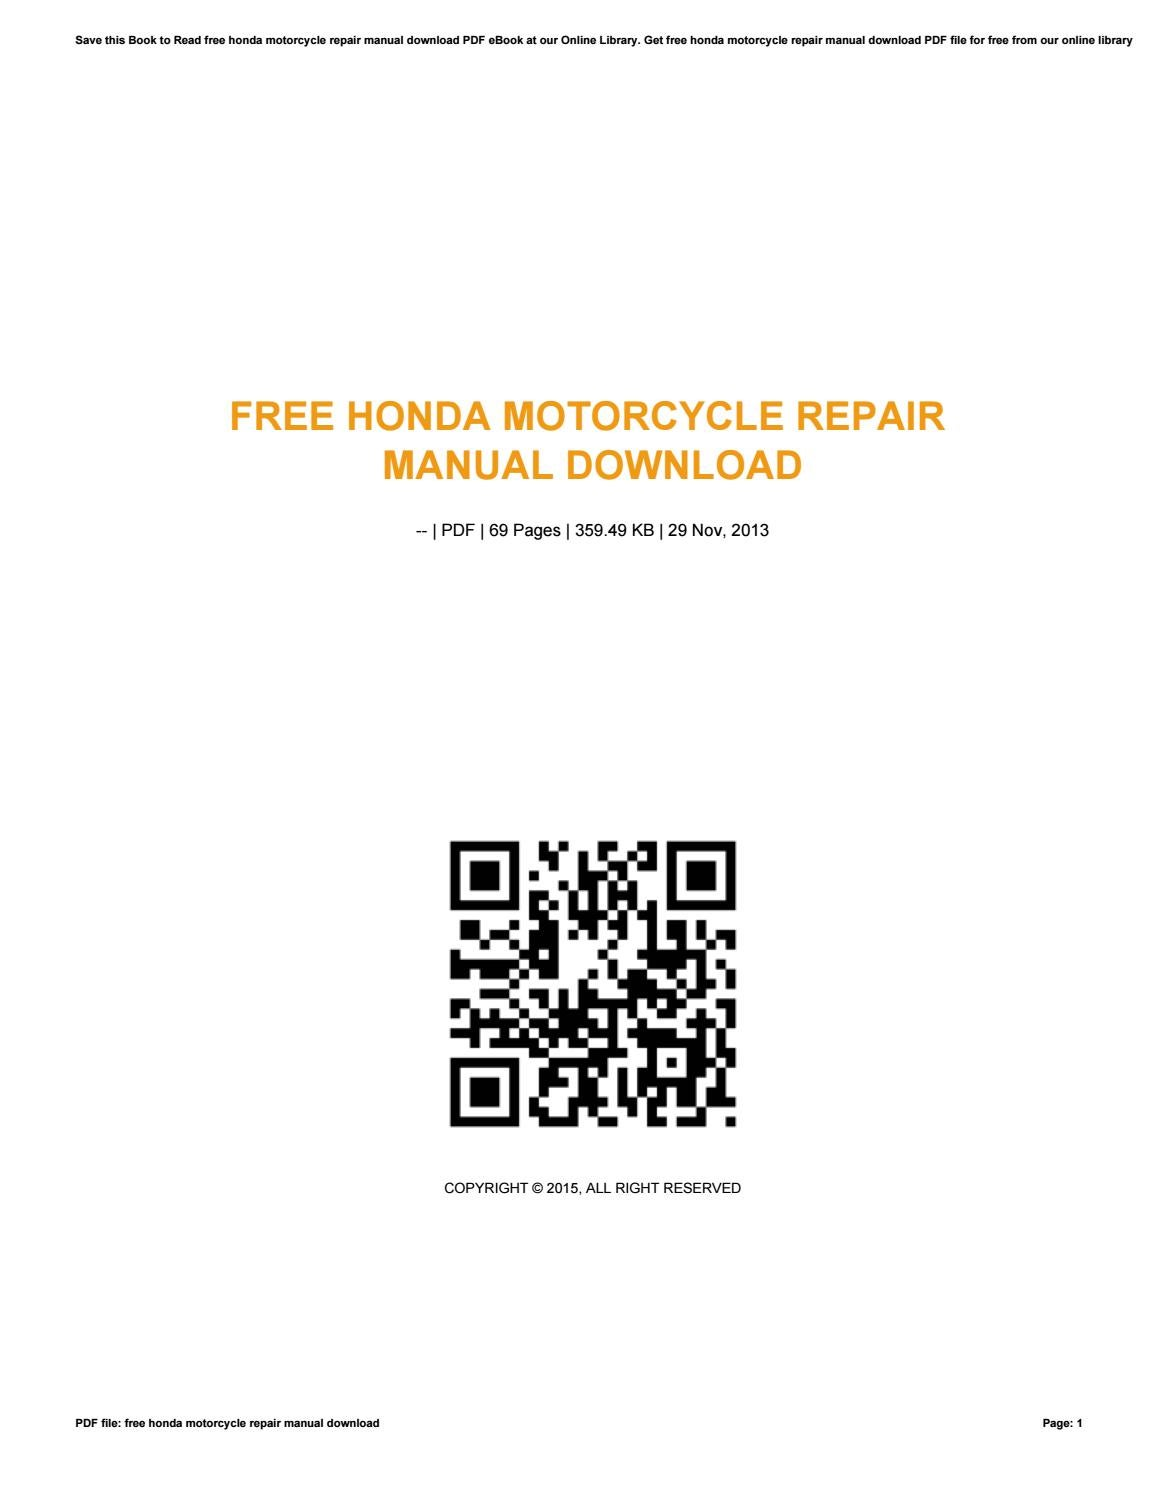 Free honda motorcycle repair manual download by